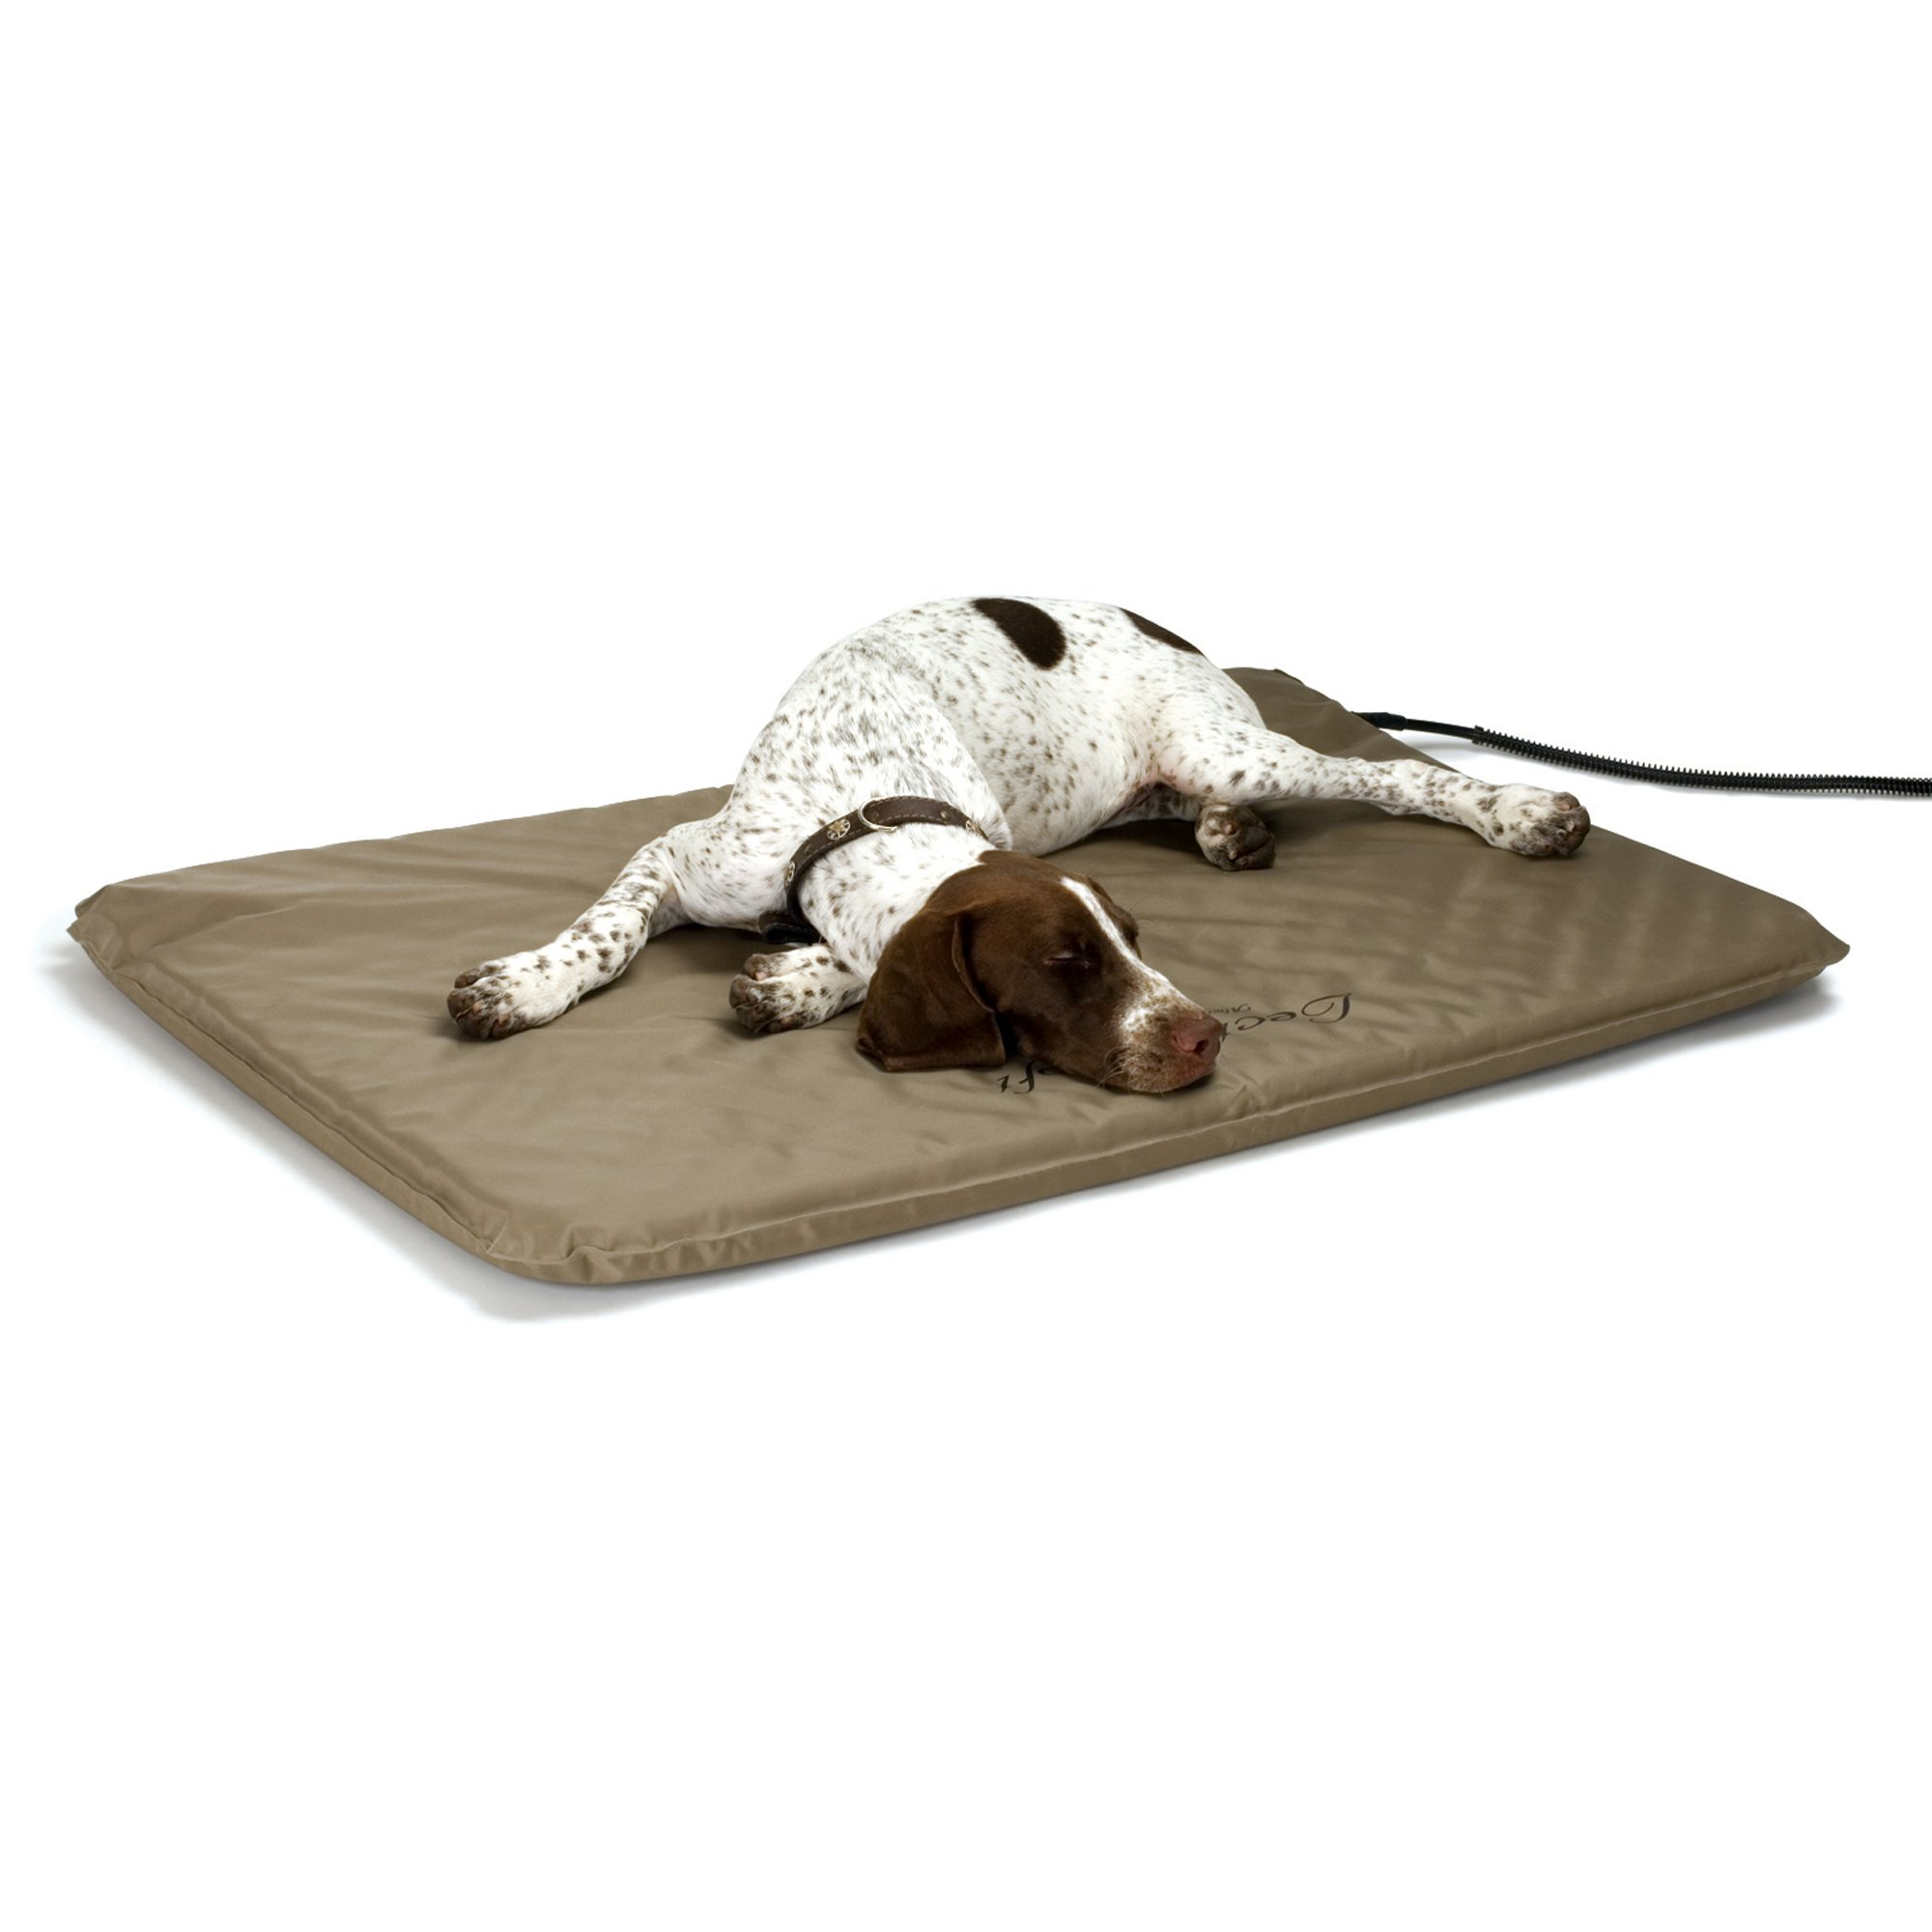 K&H Lectro-Soft Outdoor Heated Dog Bed | Petco